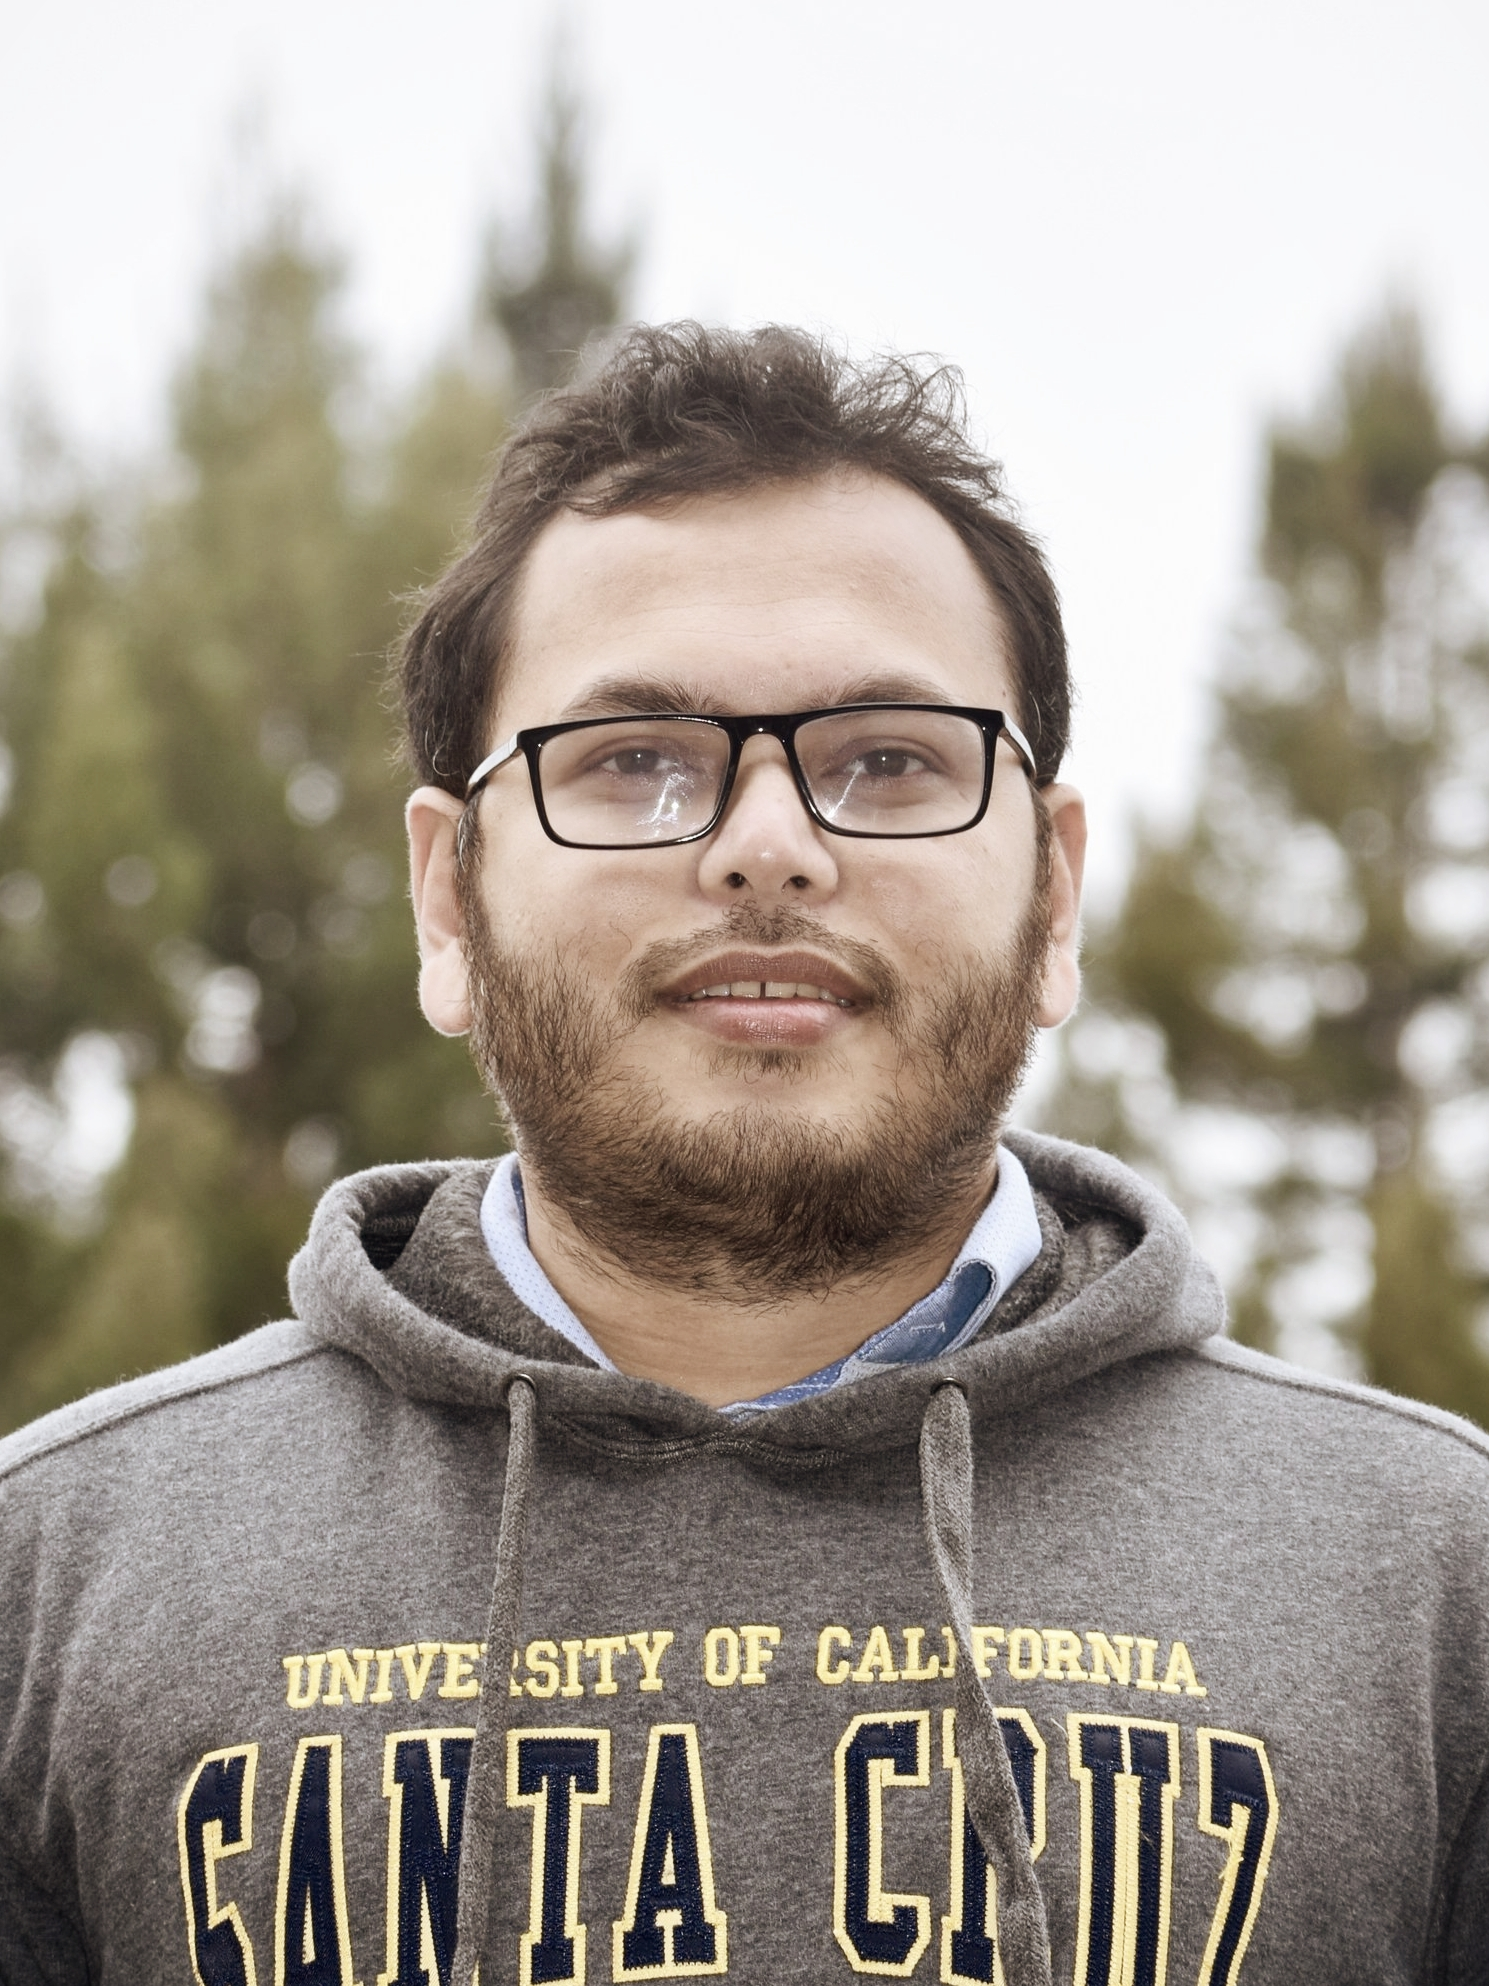 Ahsan Habib (Elect. & Comp. Eng.)  Ahsan received his  B.S.  and  M.S . in  Applied Physics, Electronics, and Communication Engineering (2010 and 2012 ) from the  University of Dhak a, and is currently pursuing a  Ph.D. in ECE Department  at  UCSC  where he is developing electrochemically tunable plasmonic devices. His research also involves novel graphene devices for solar energy harvesting and hydrogen production. He received Baskin School of Engineering,  Dissertation-Year Fellowship (2019-20) ,  Outstanding Teaching Assistant Award in 2018 , and  the Chancellor's Fellowship in 2015 .